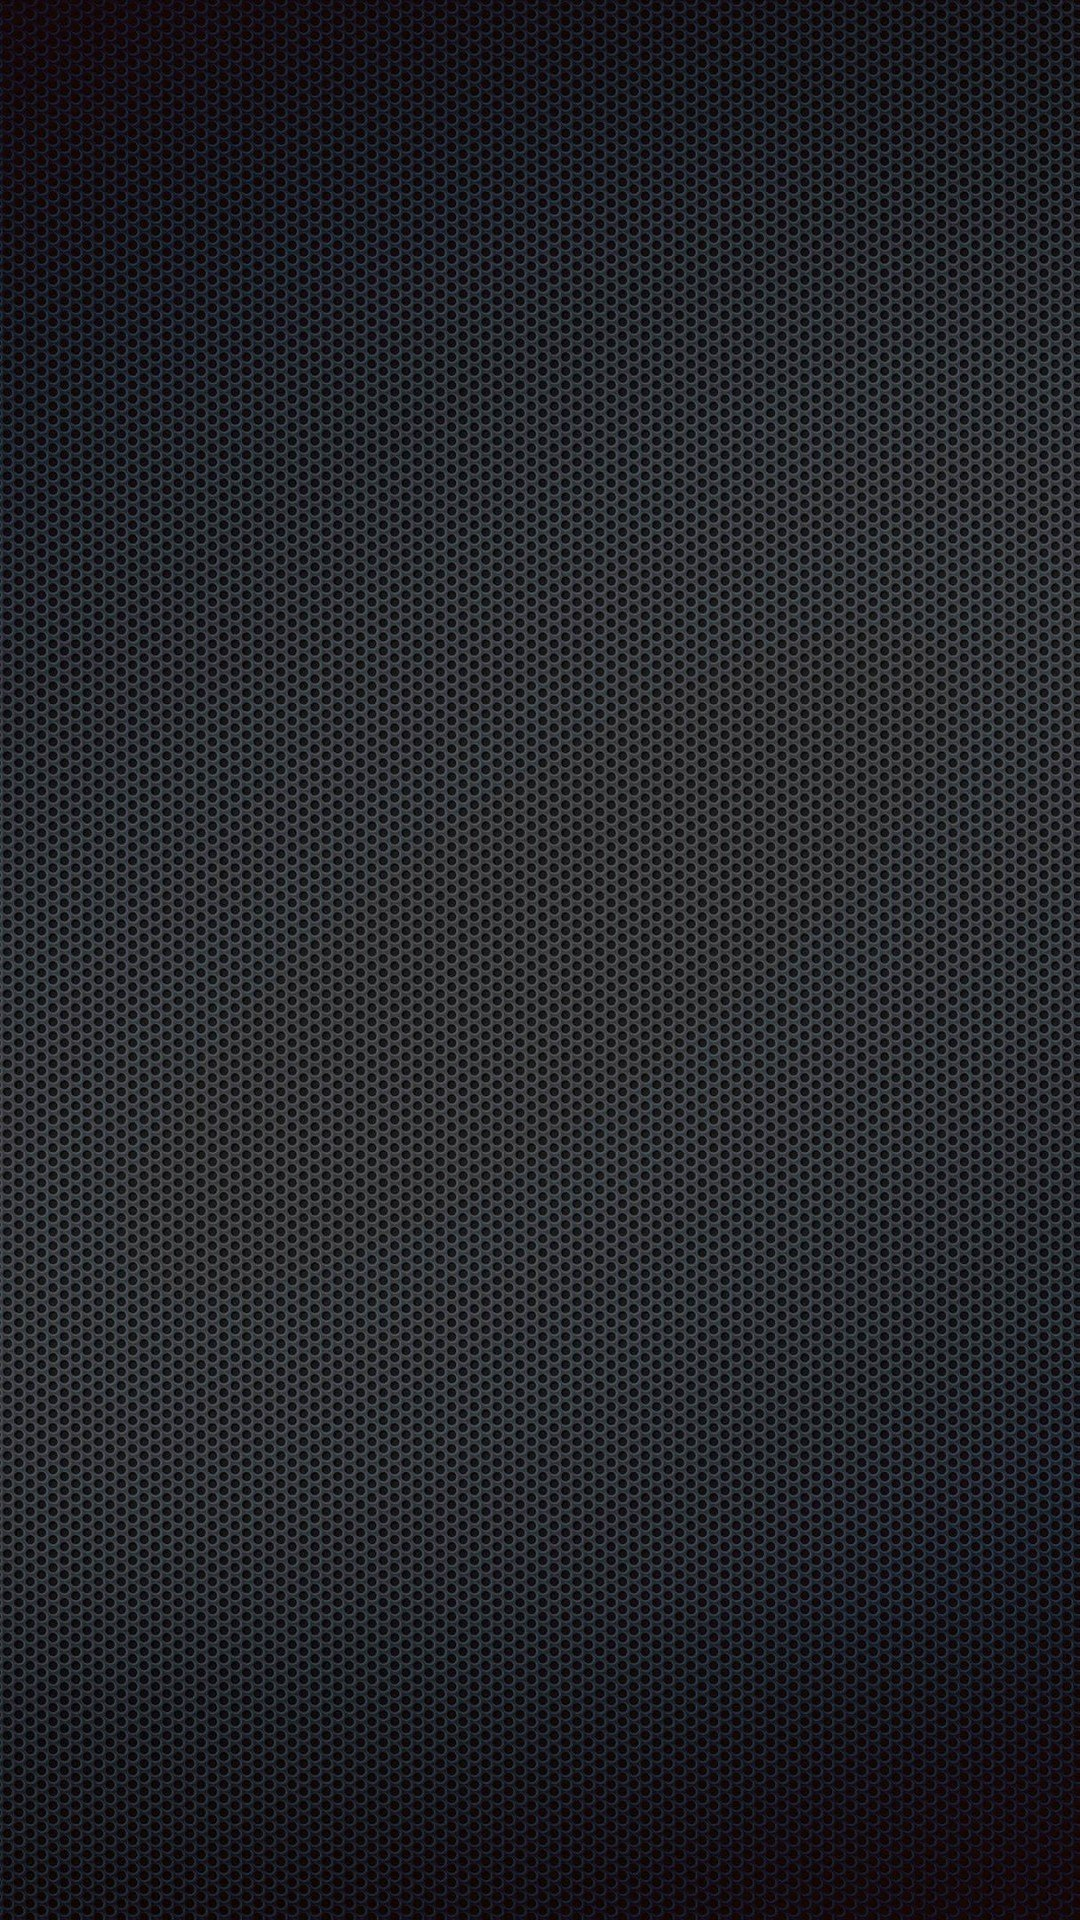 33 Samsung Galaxy S5 Black Wallpaper On Wallpapersafari